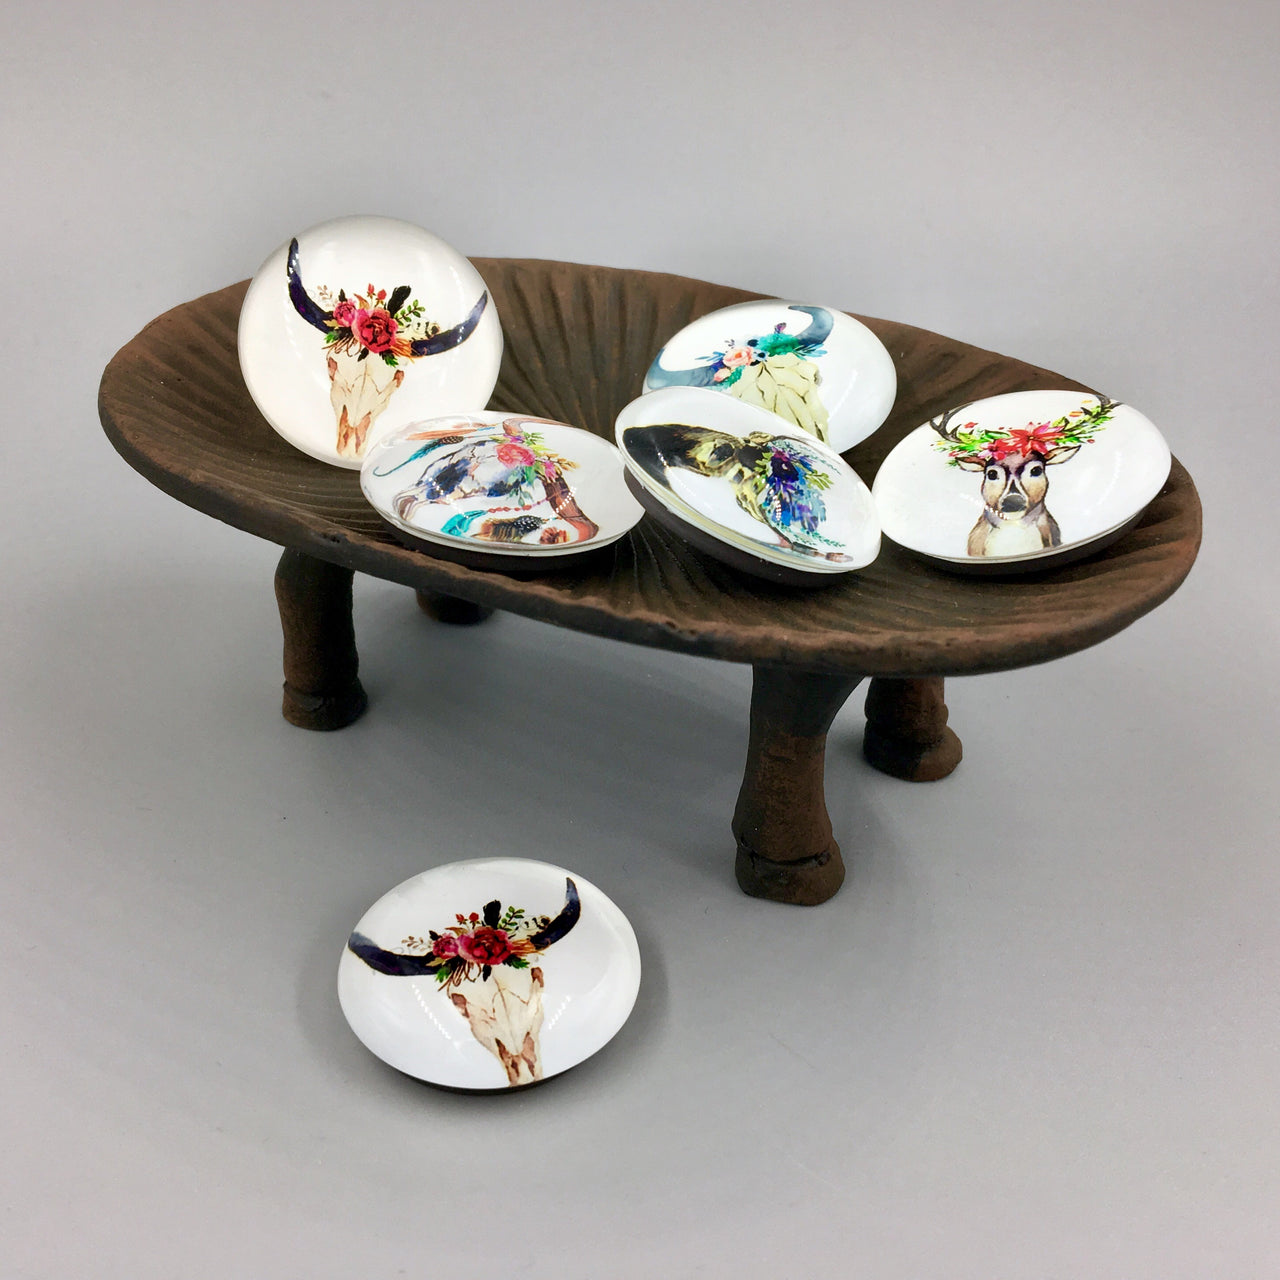 Heifer Trinket Dish shown with magnets